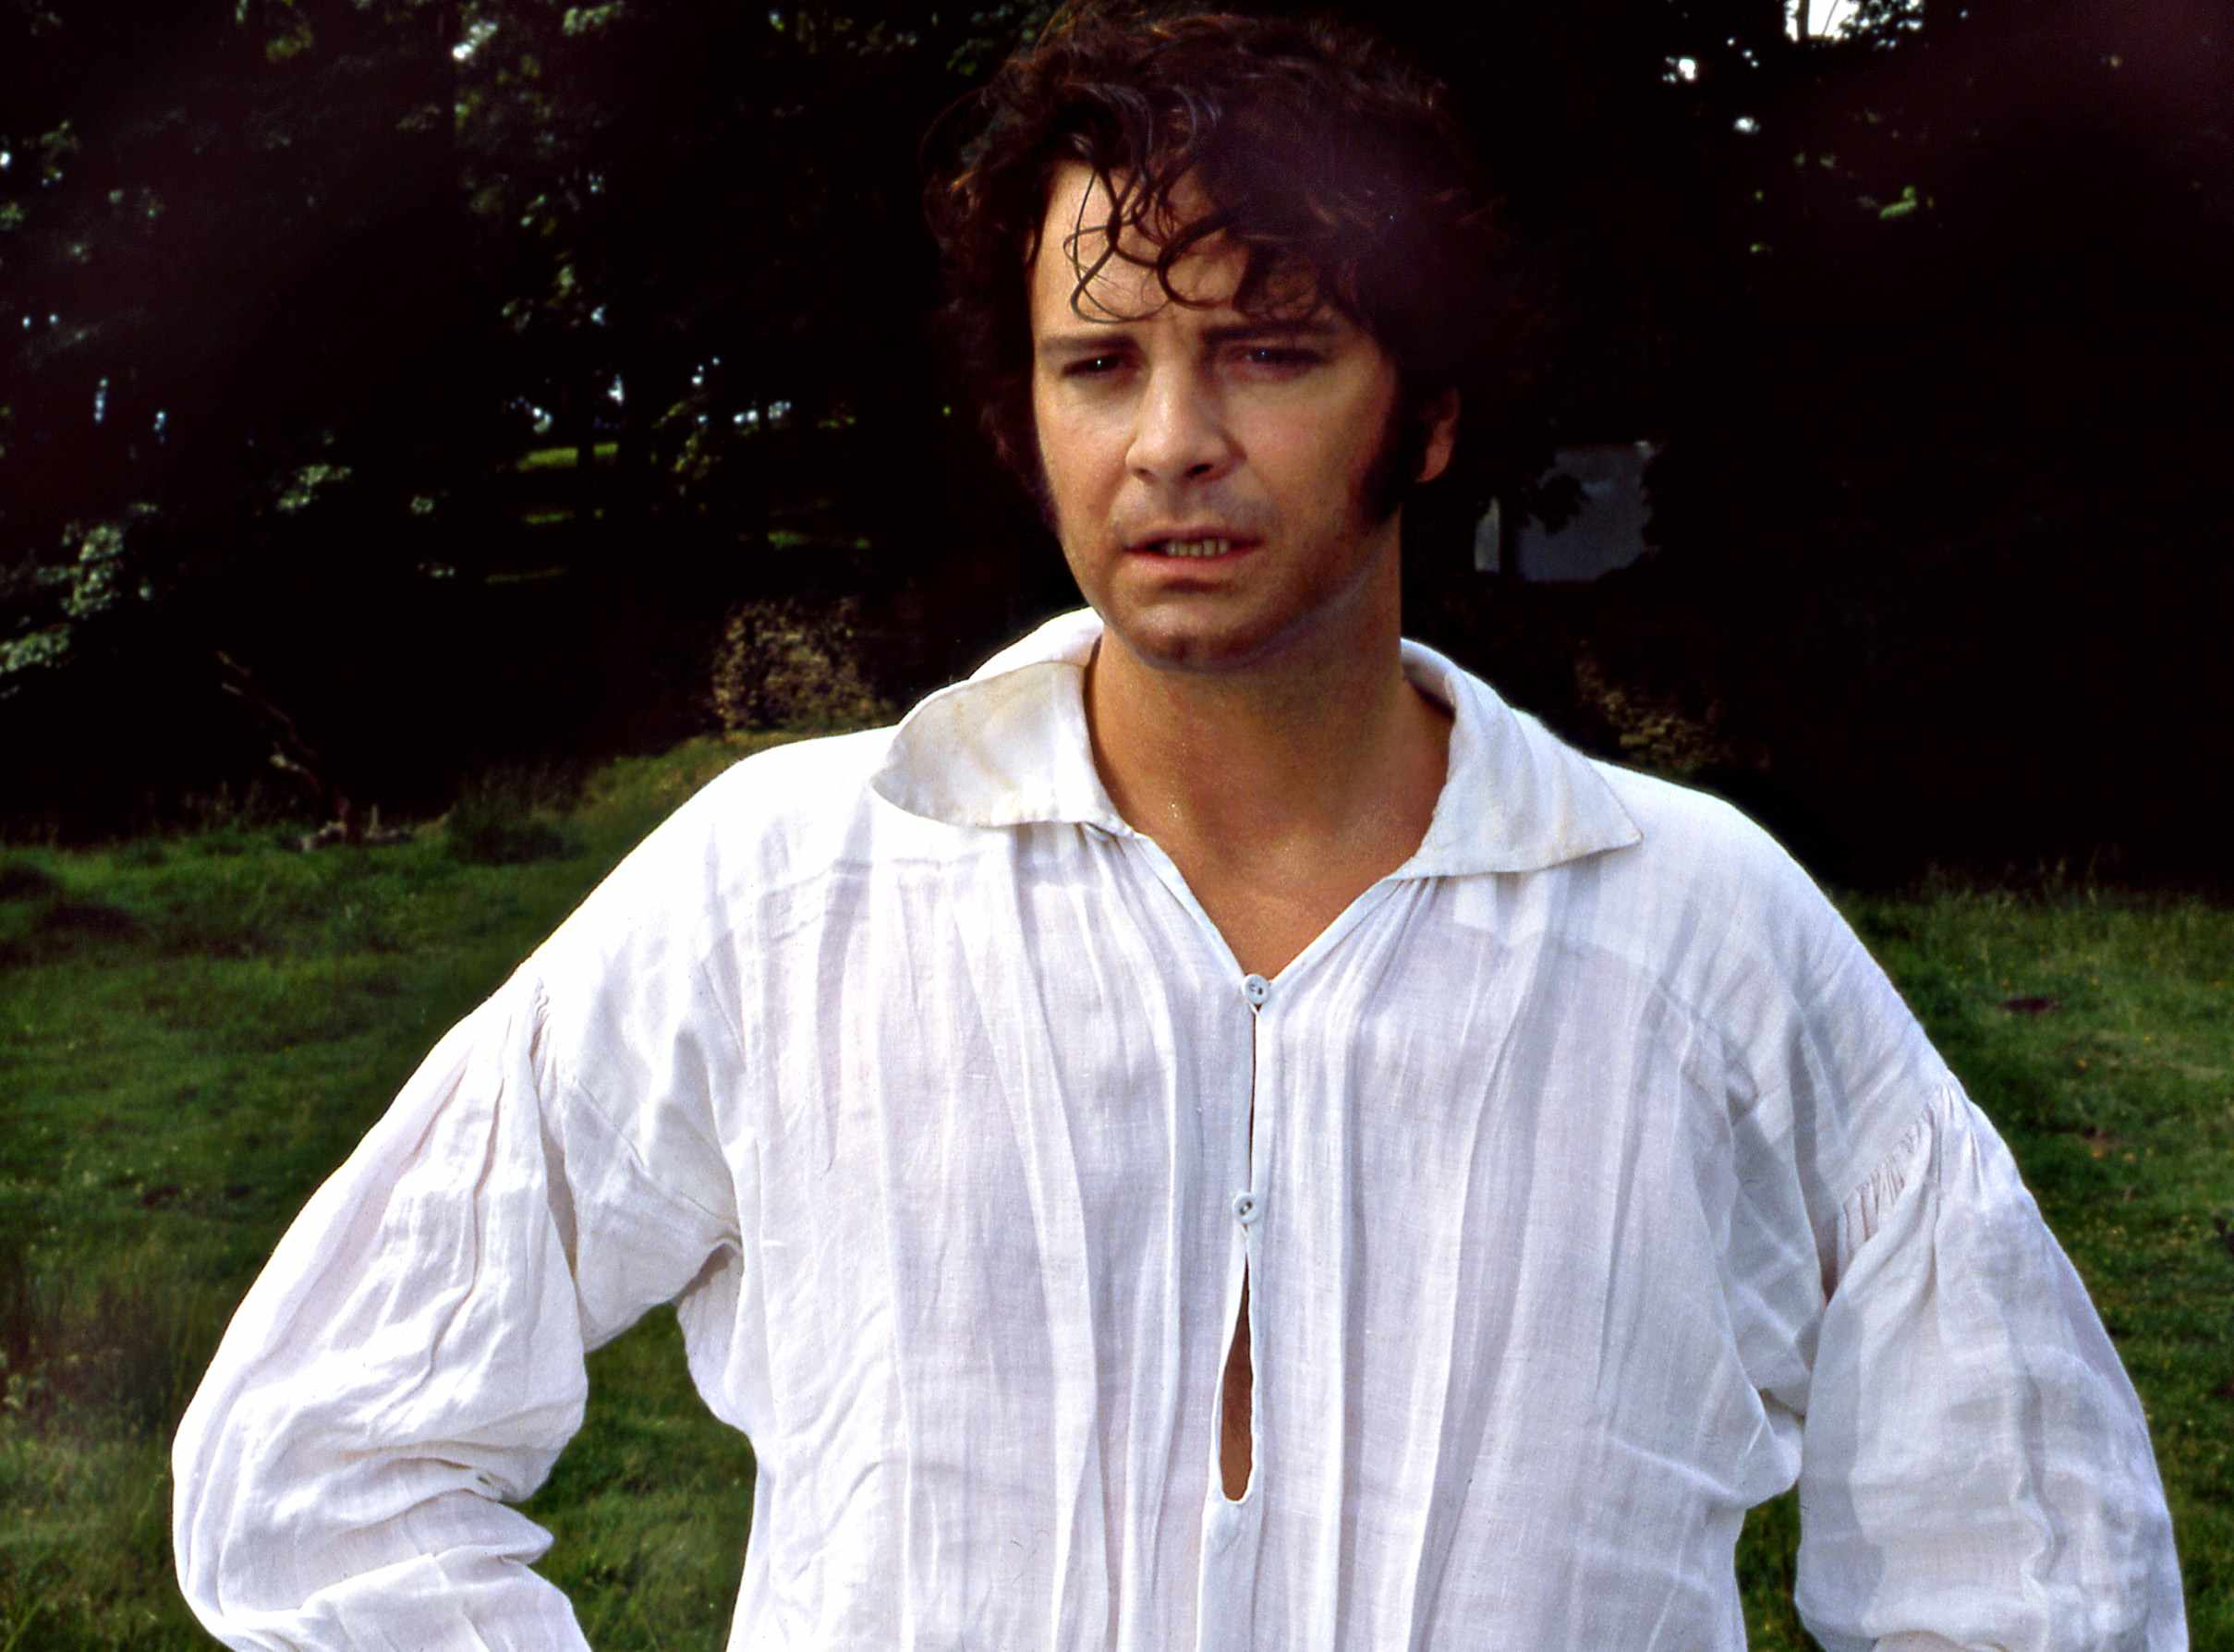 Colin Firth as Mr Darcy in the BBC's classic Pride and Prejudice (BBC)